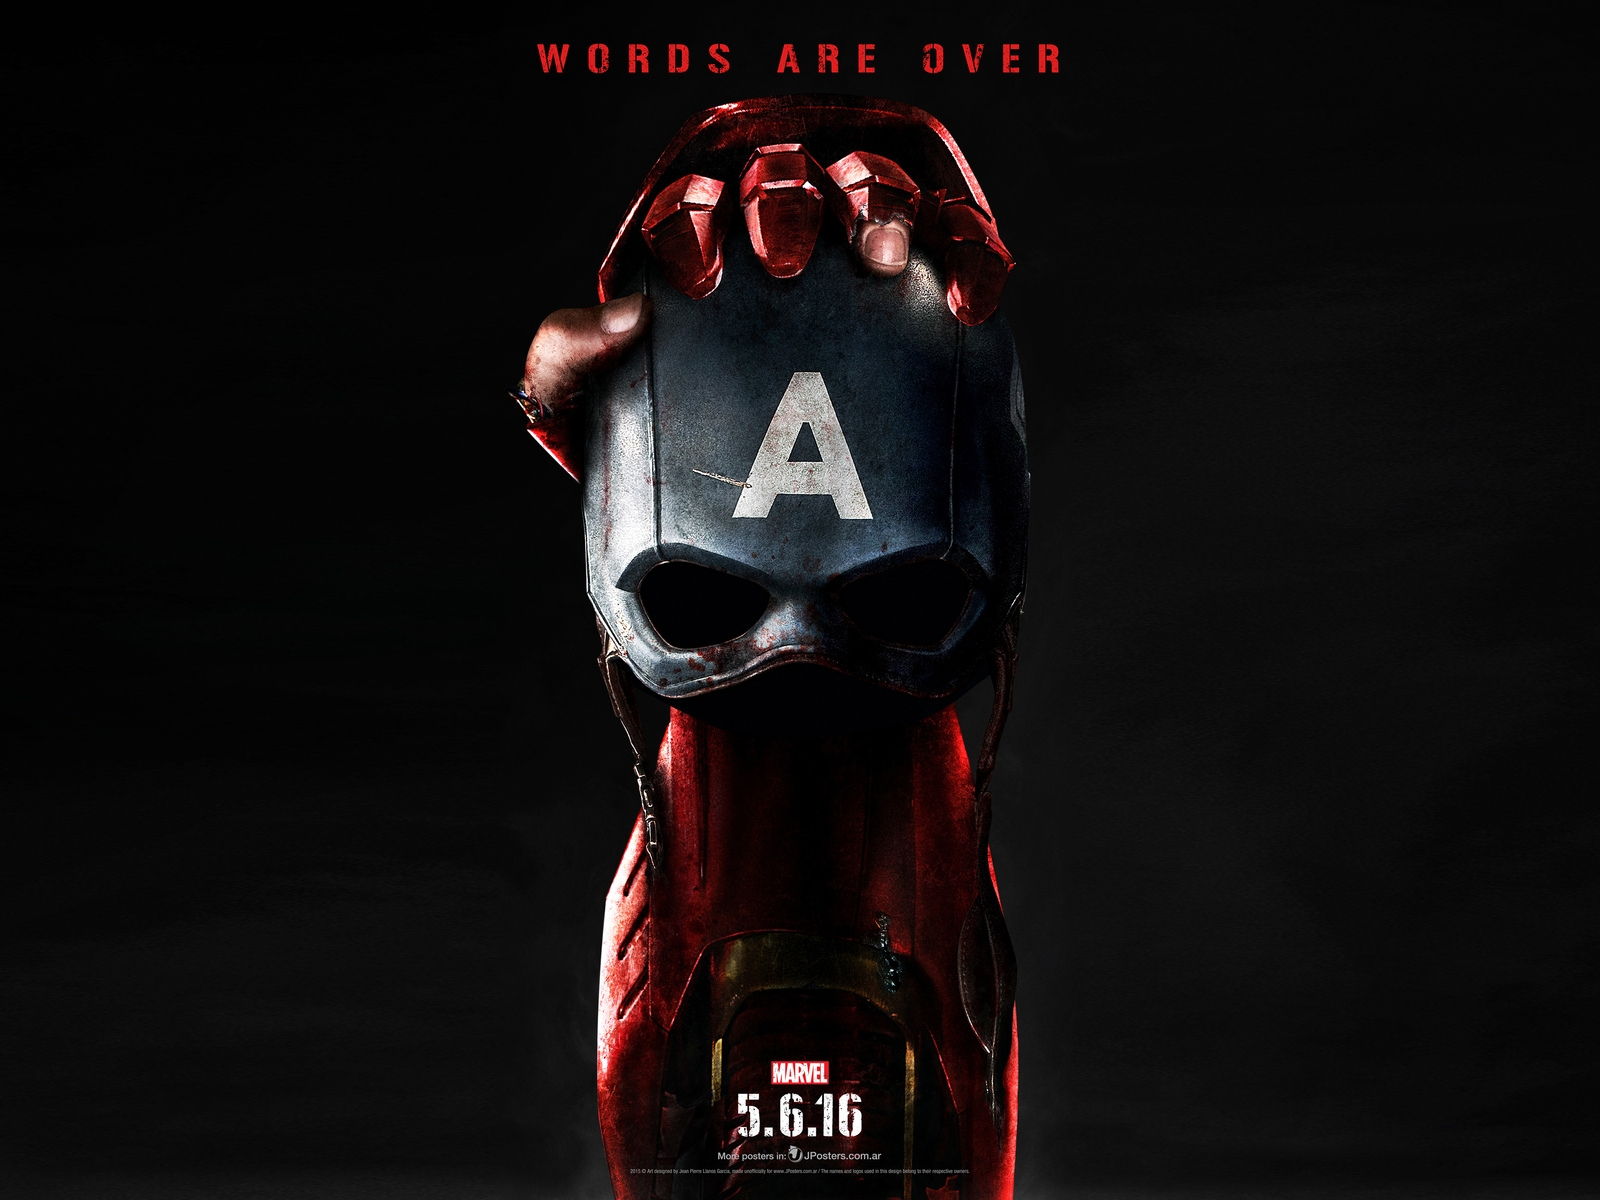 Captain America Civil War Poster 2016 for 1600 x 1200 resolution